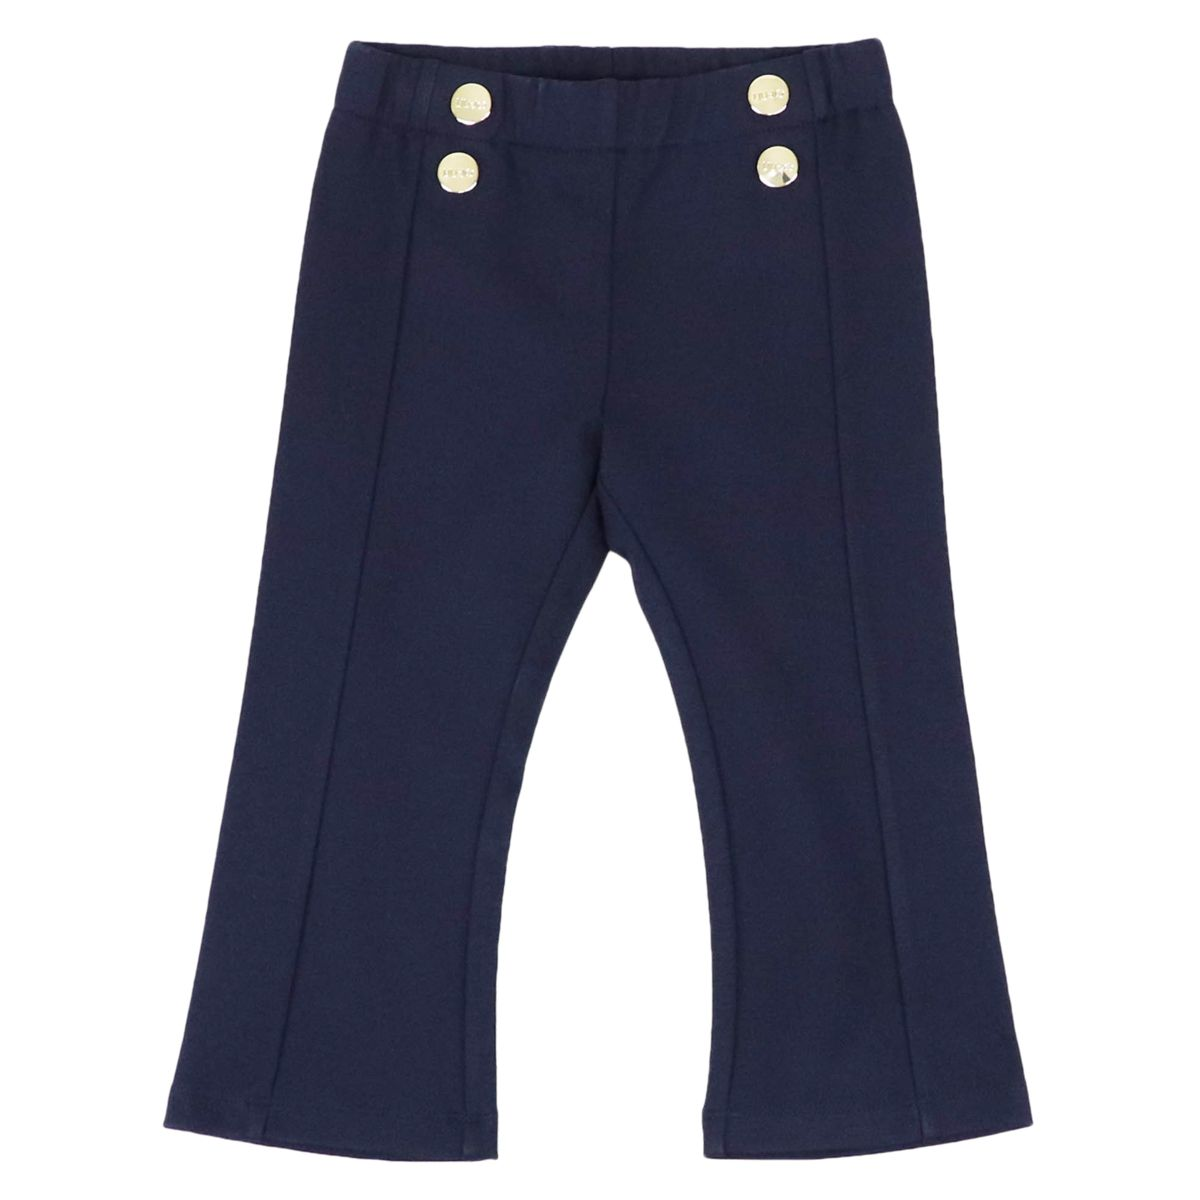 Milano stitch jersey trousers with metal buttons Blue Liu Jo